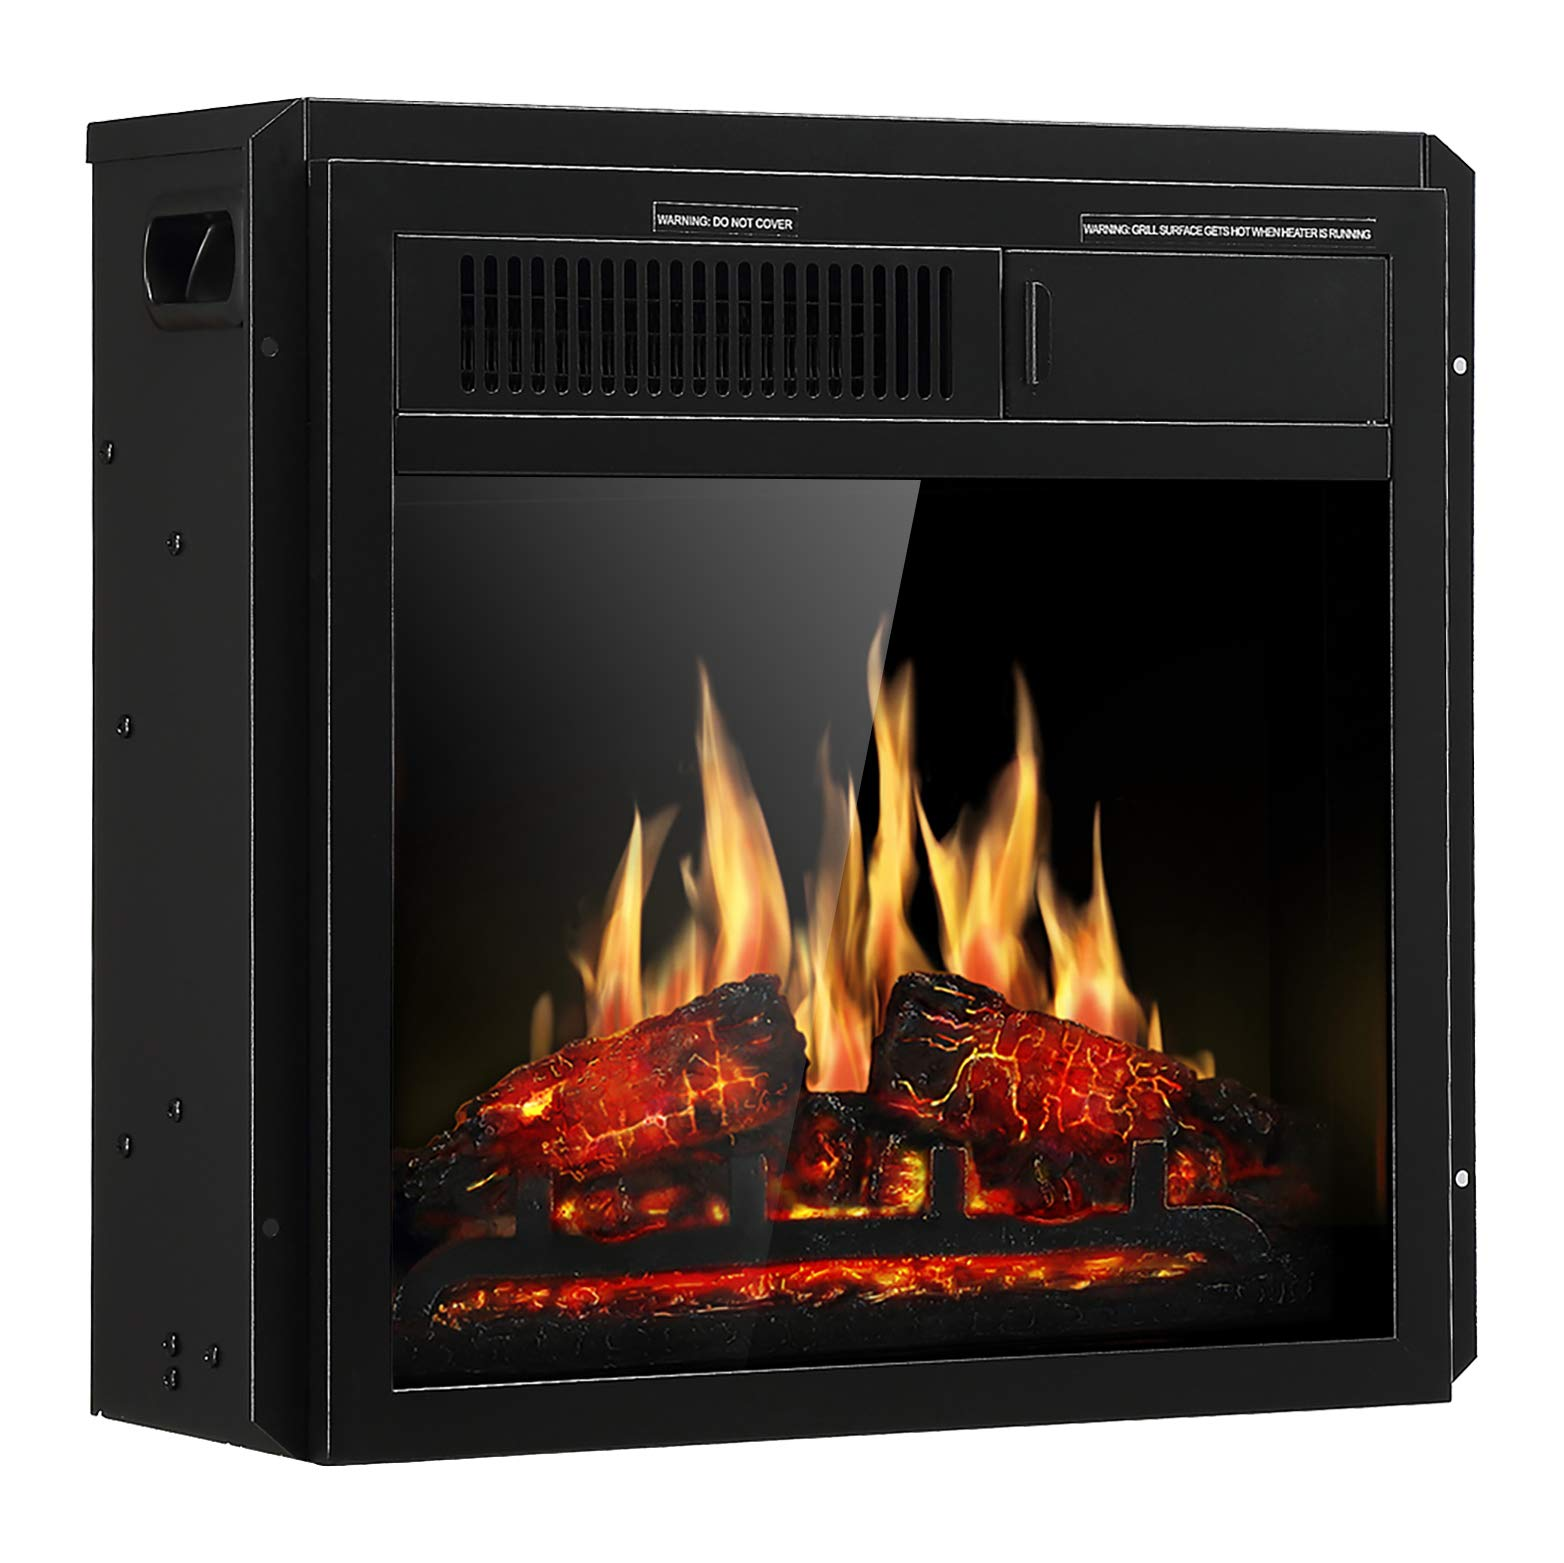 JAMFLY Electric Fireplace Insert 18'' Freestanding Heater with 7 Log Hearth Flame Settings and Remote Control,1500w,Black by JAMFLY